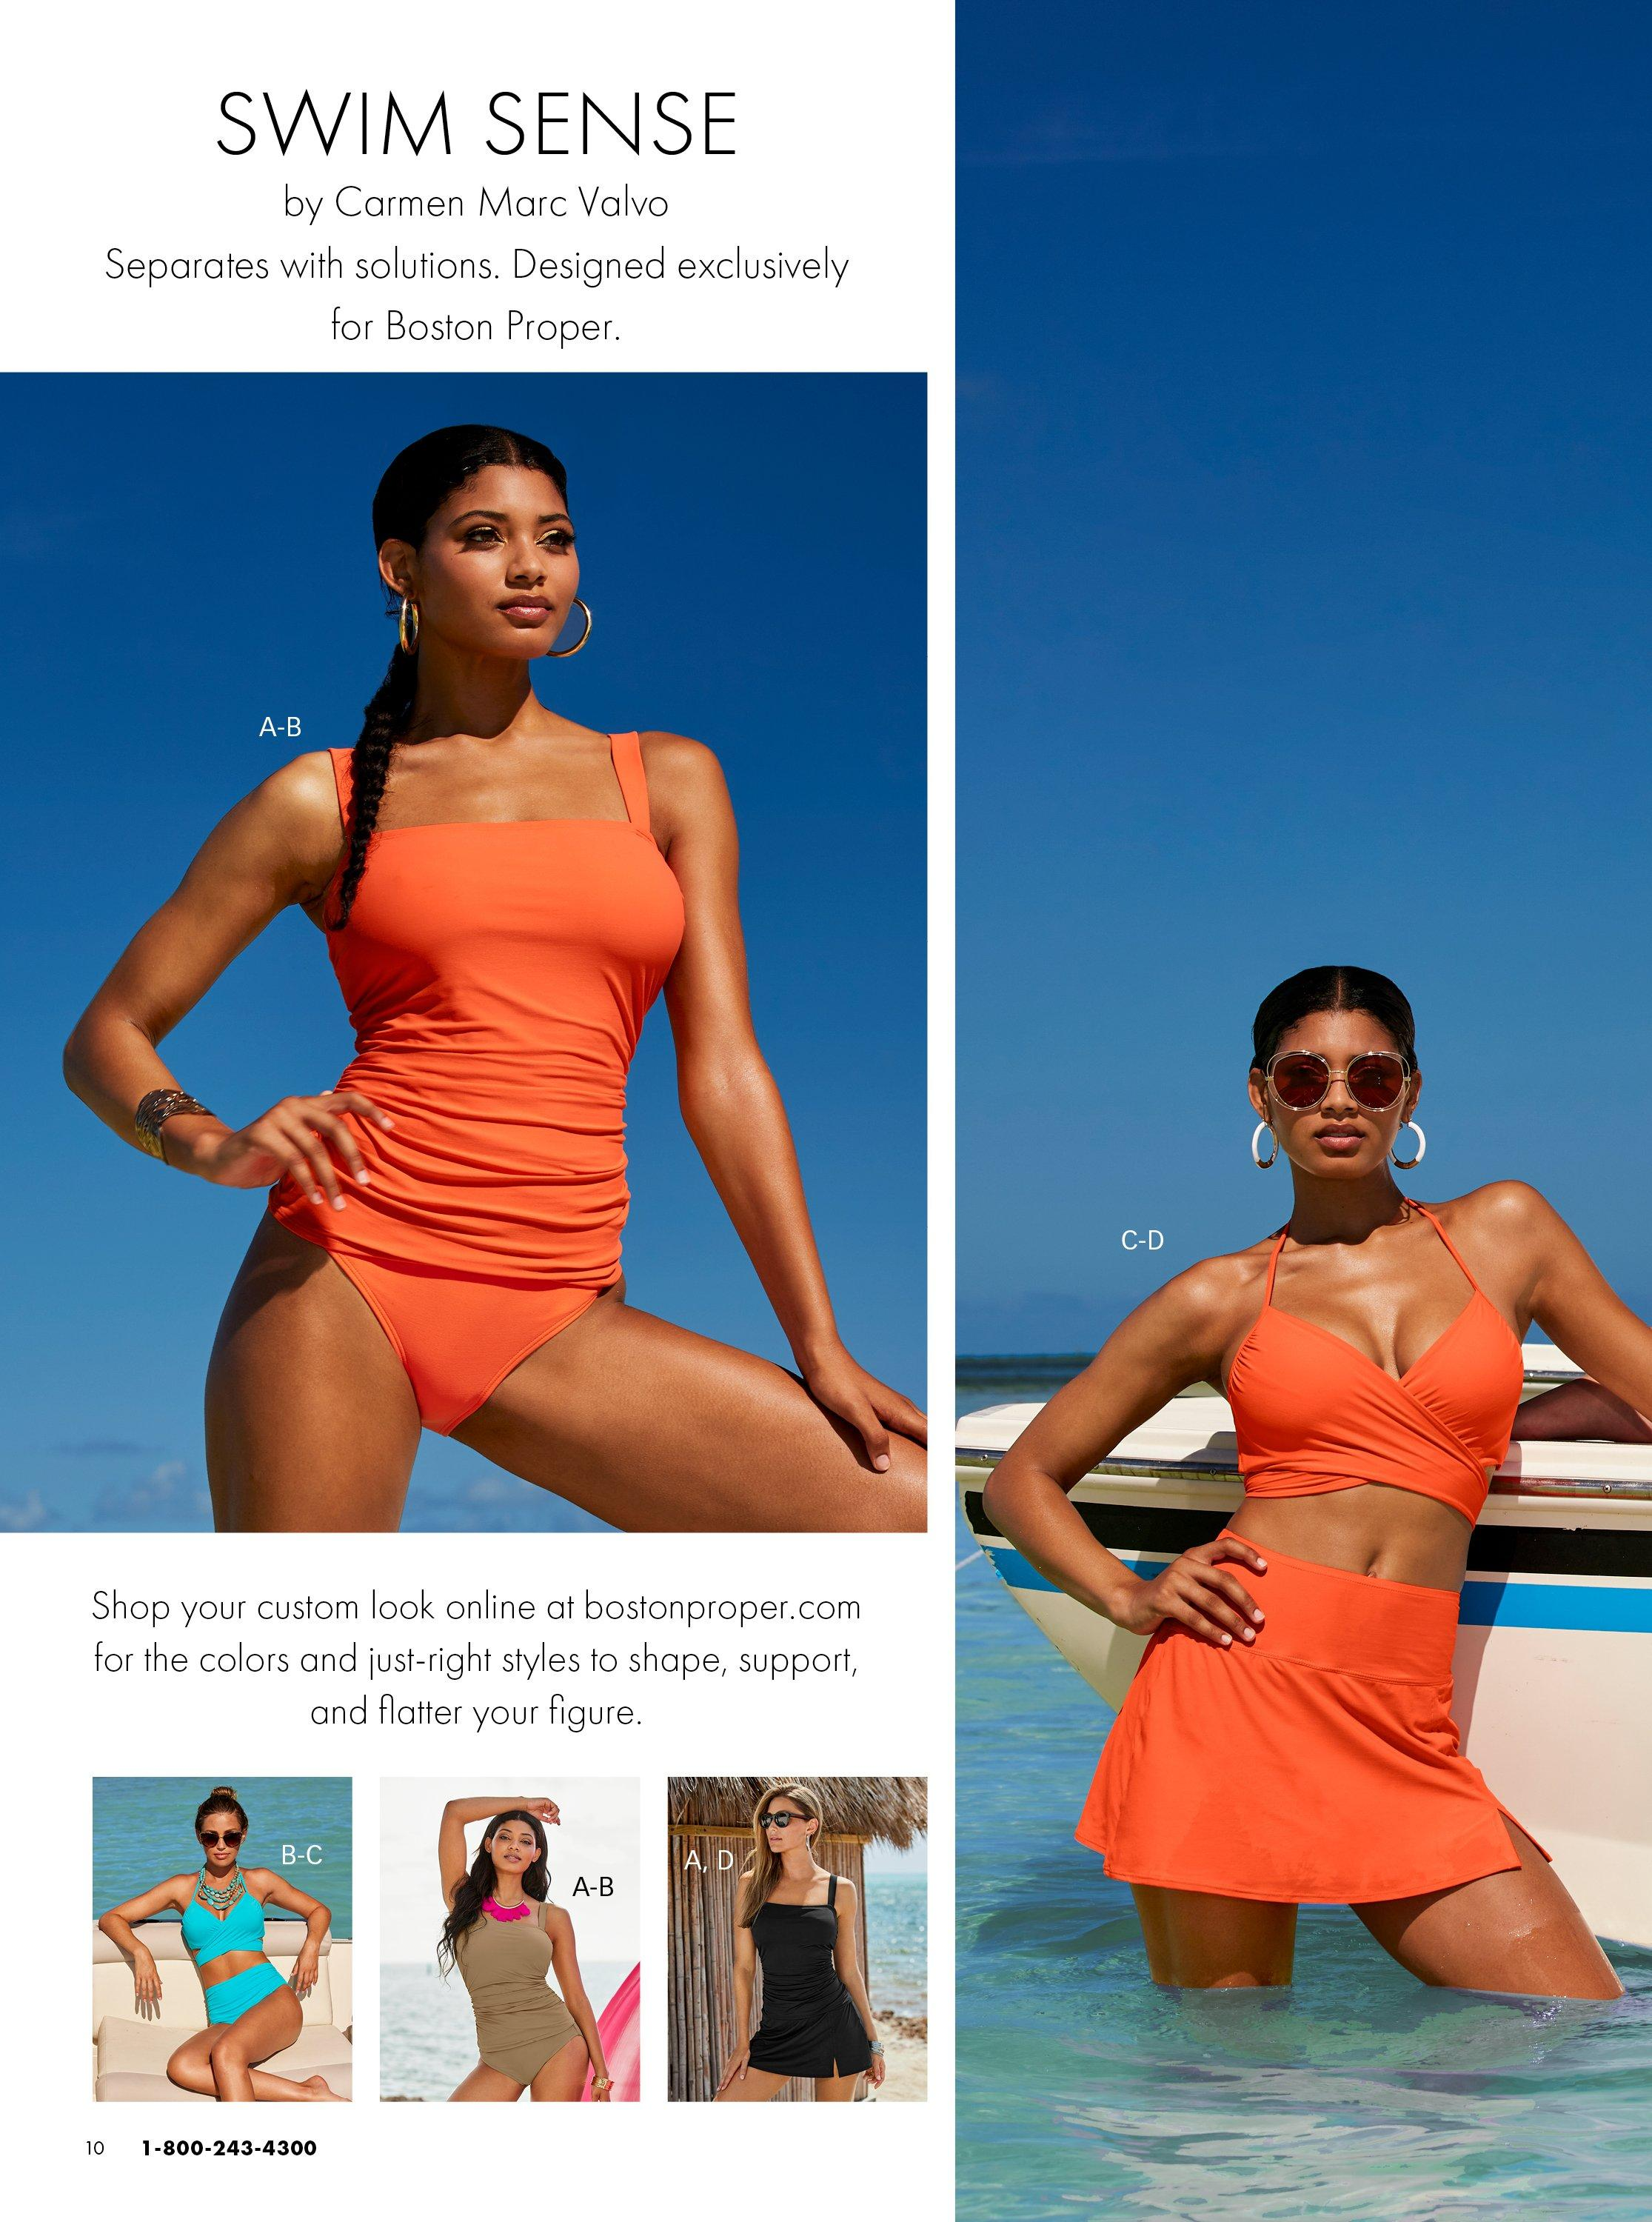 left model wearing an orange tankini. right model wearing an orange bikini with skirted bottoms. same items shown in blue, tan, and black.